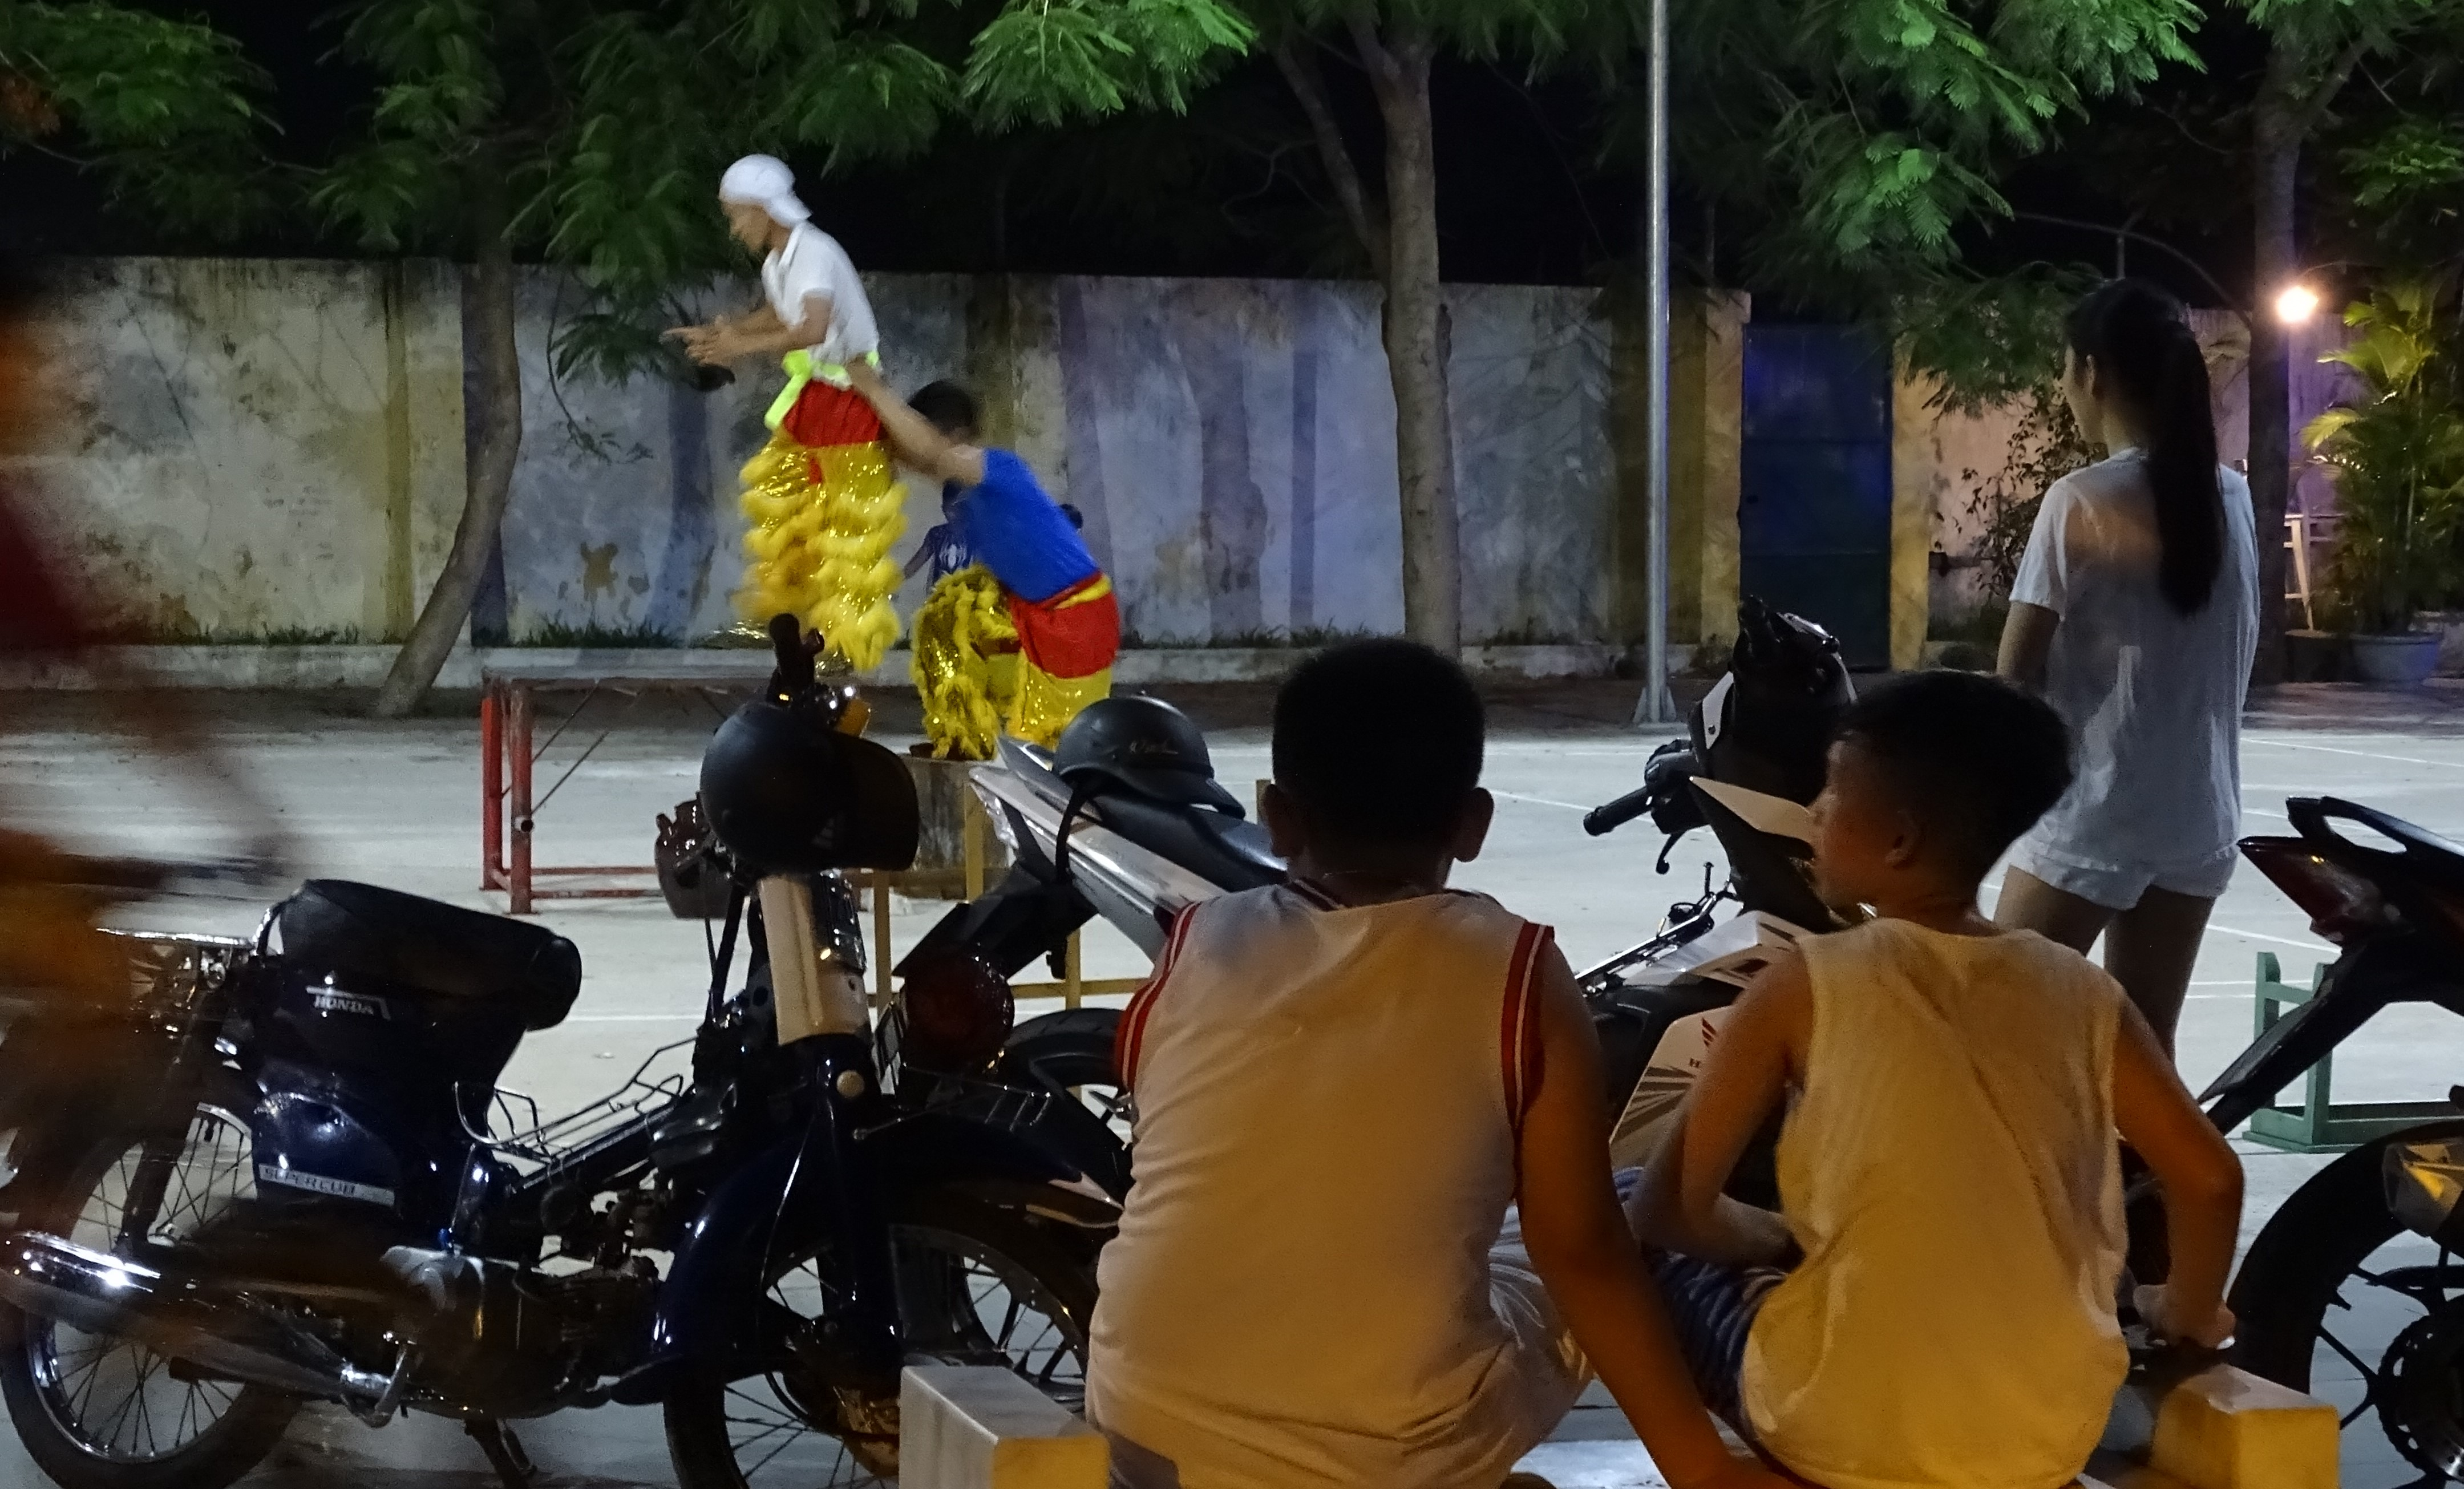 Kids watching two young man wearing golden trousers and rehearsing the moves of the dragon dance